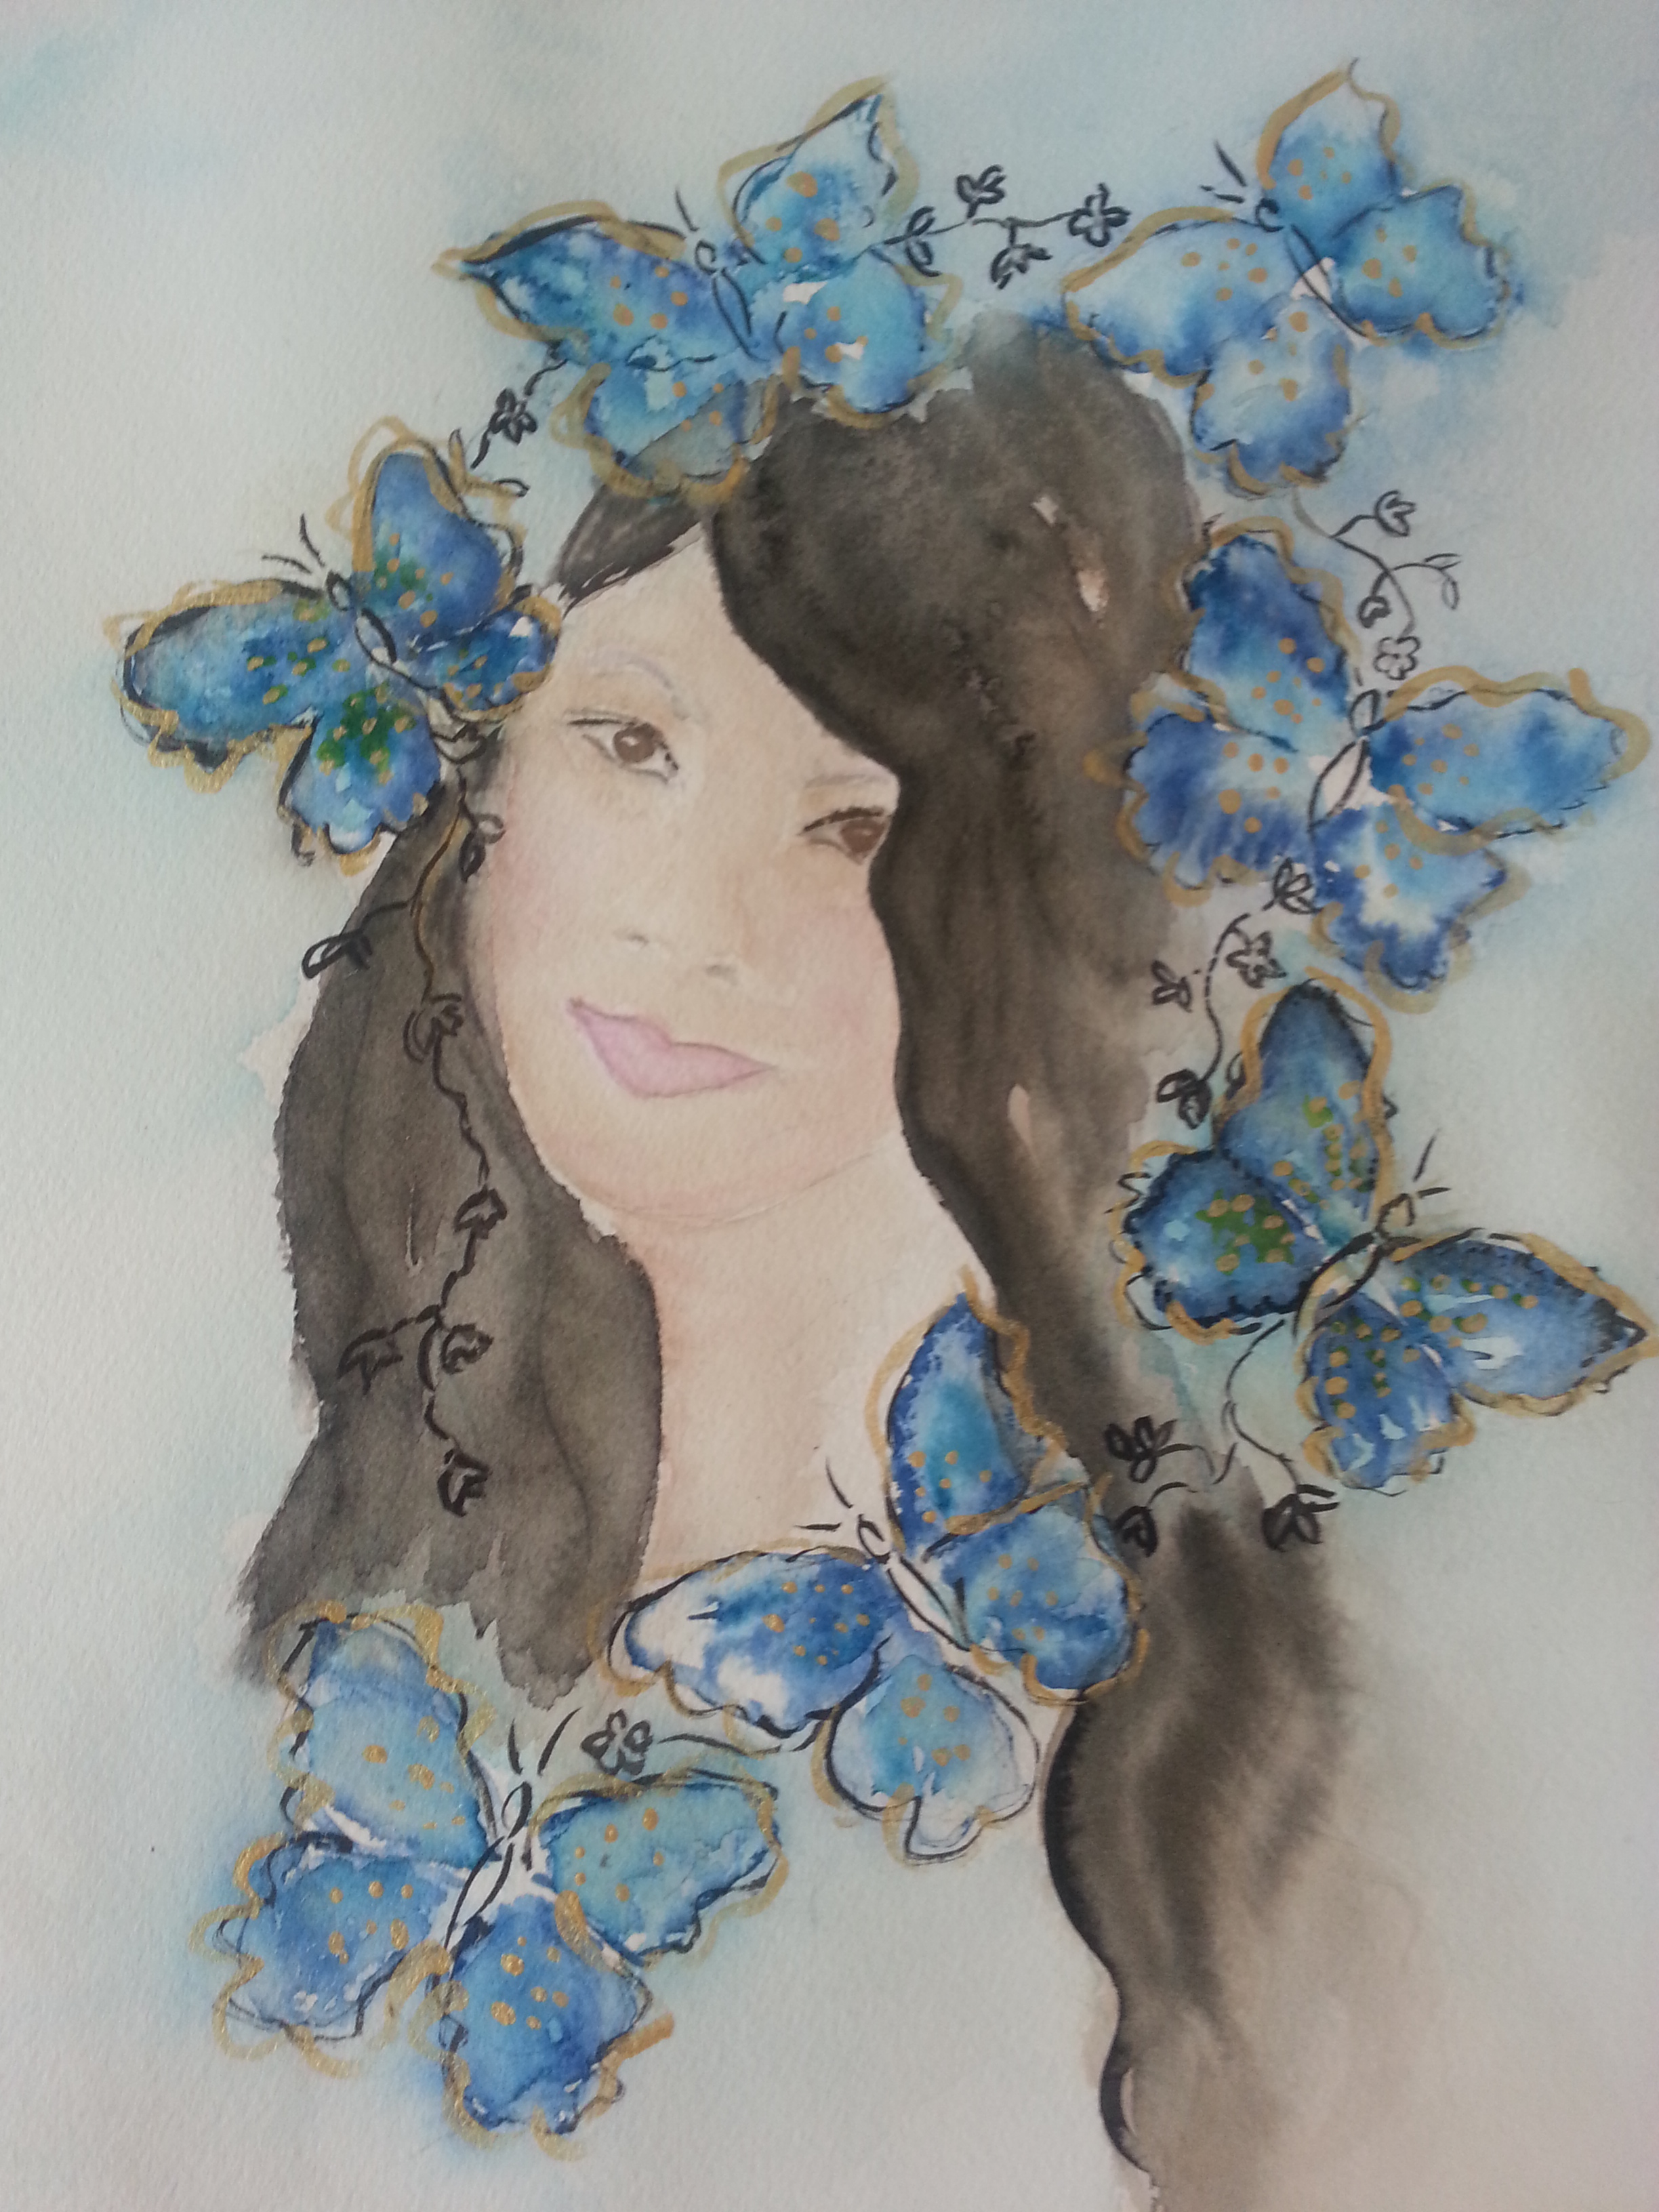 This painting was donated to Meliissa B Geltch who is the founder of a charity called Night Butterflies in Bali